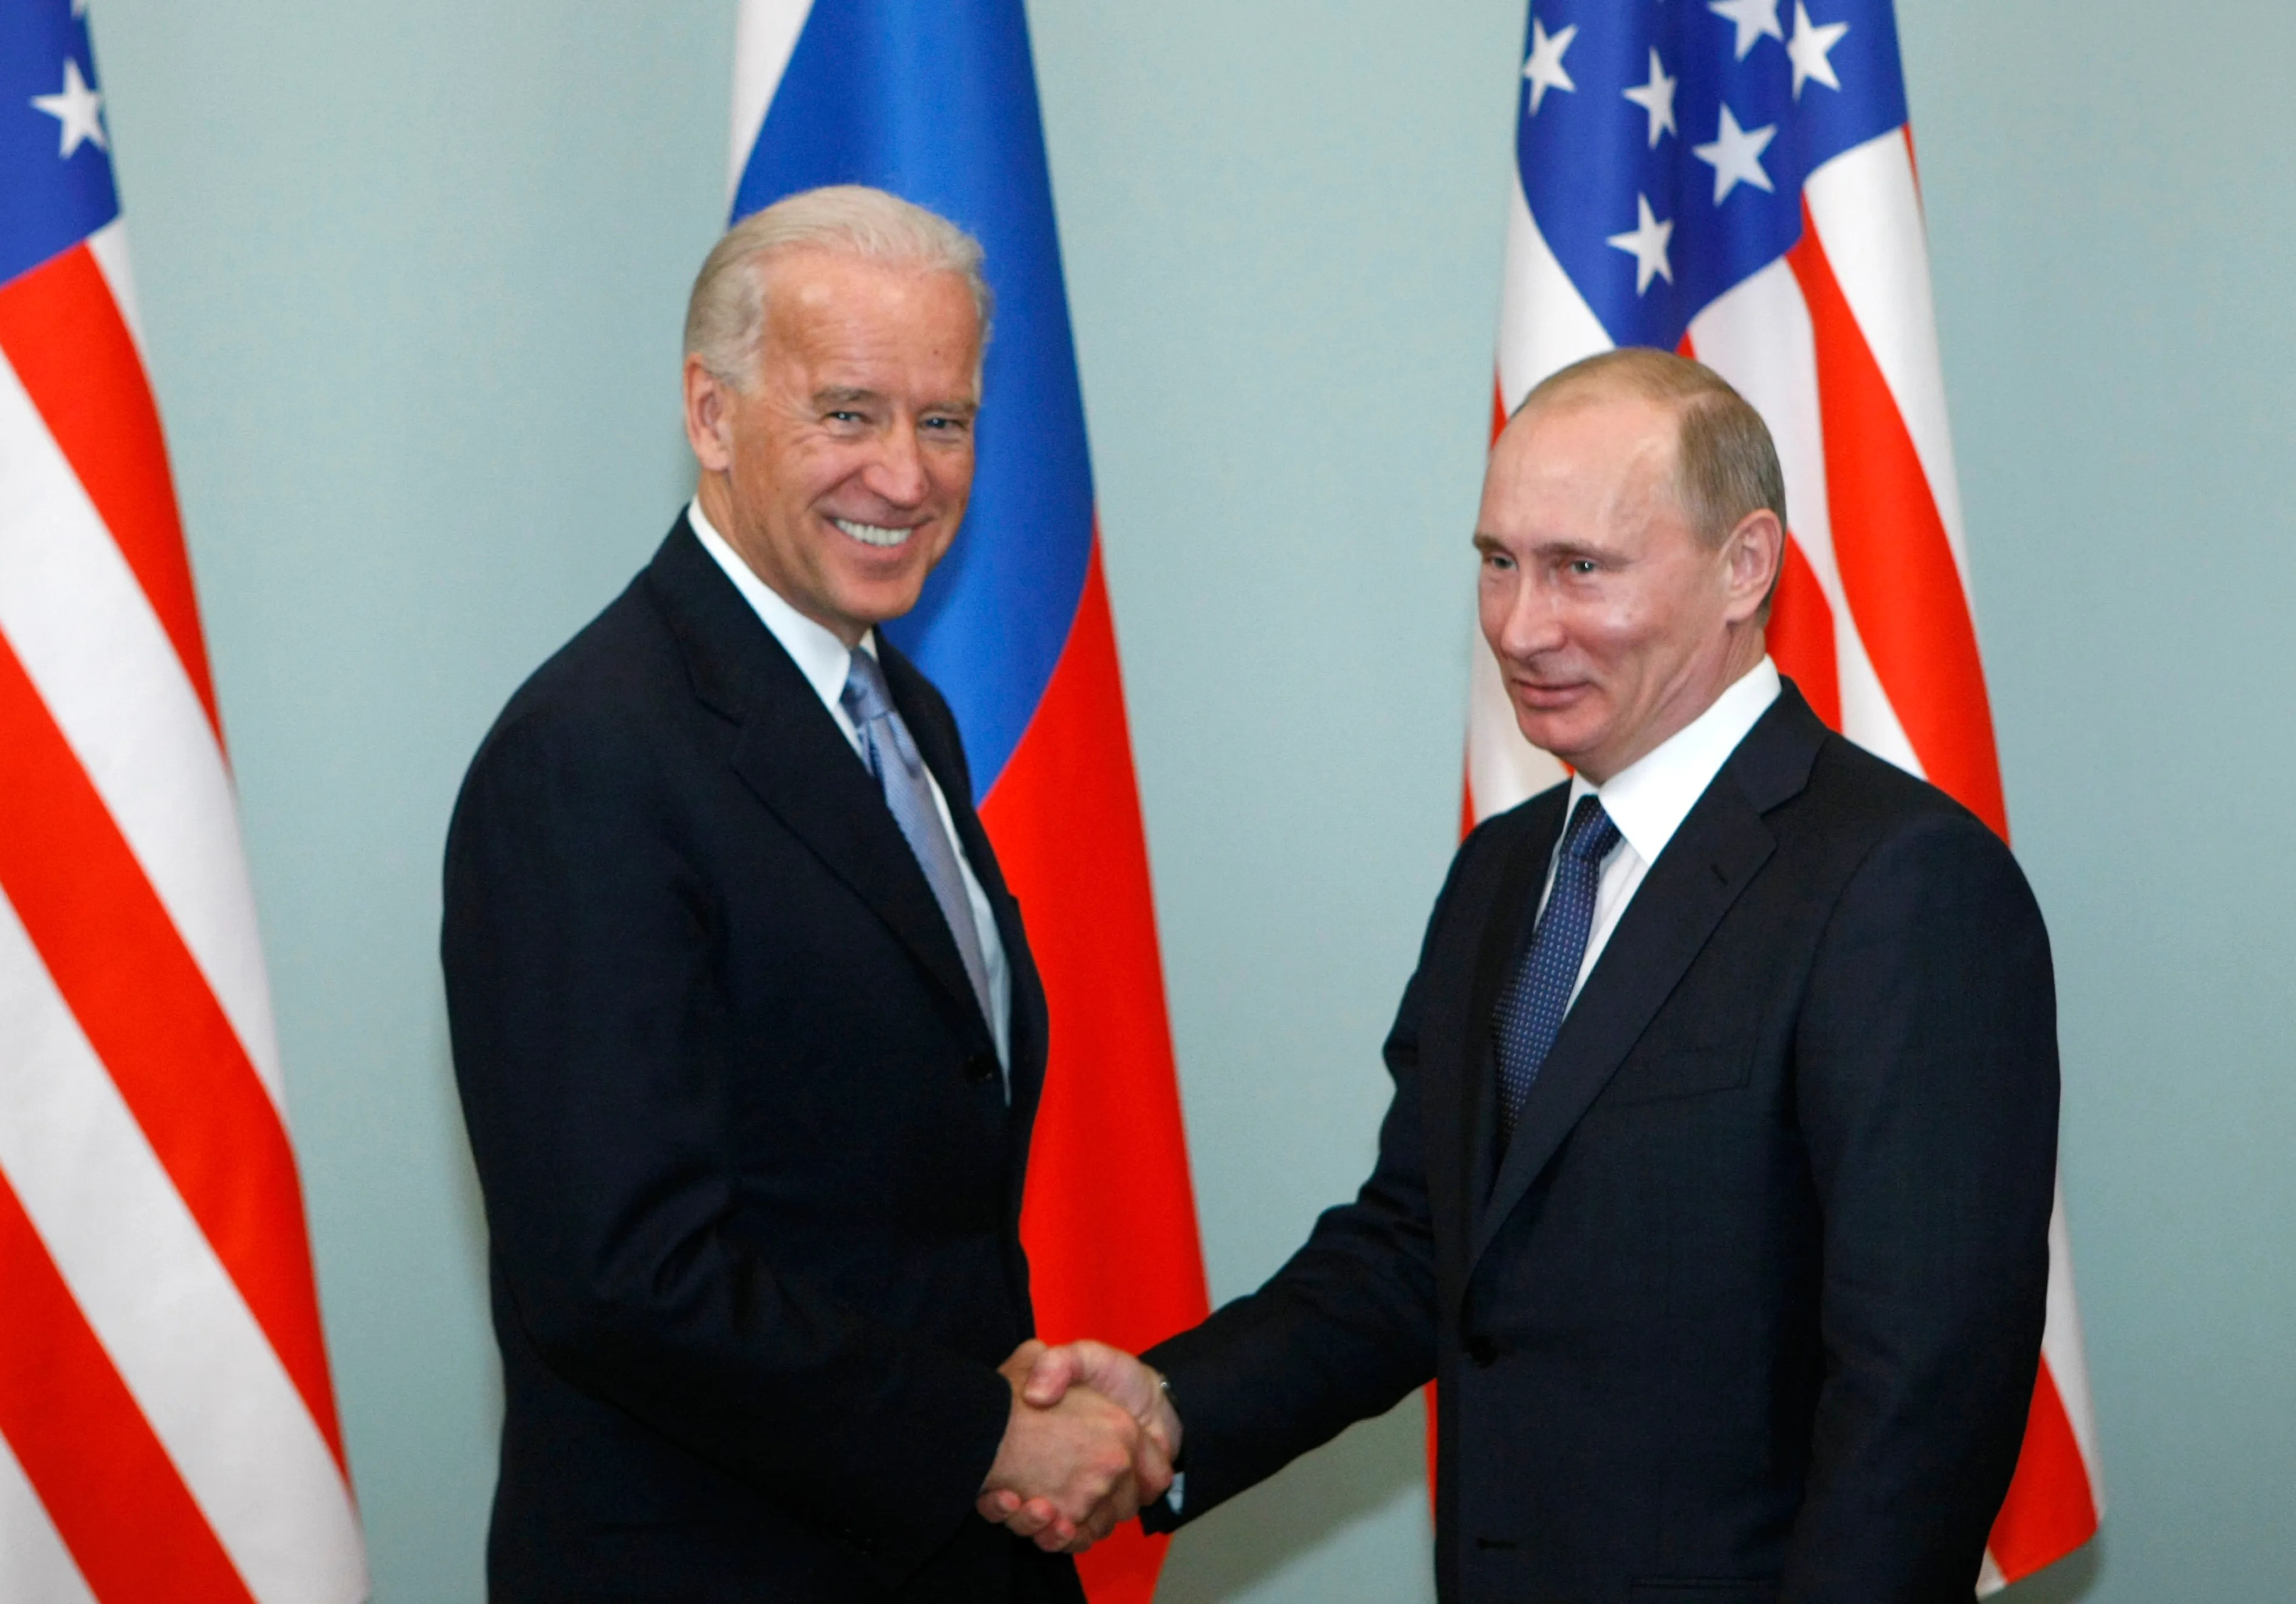 Then-Vice President Joe Biden and Russian Prime Minister Vladimir Putin March 10, 2011 in Moscow.